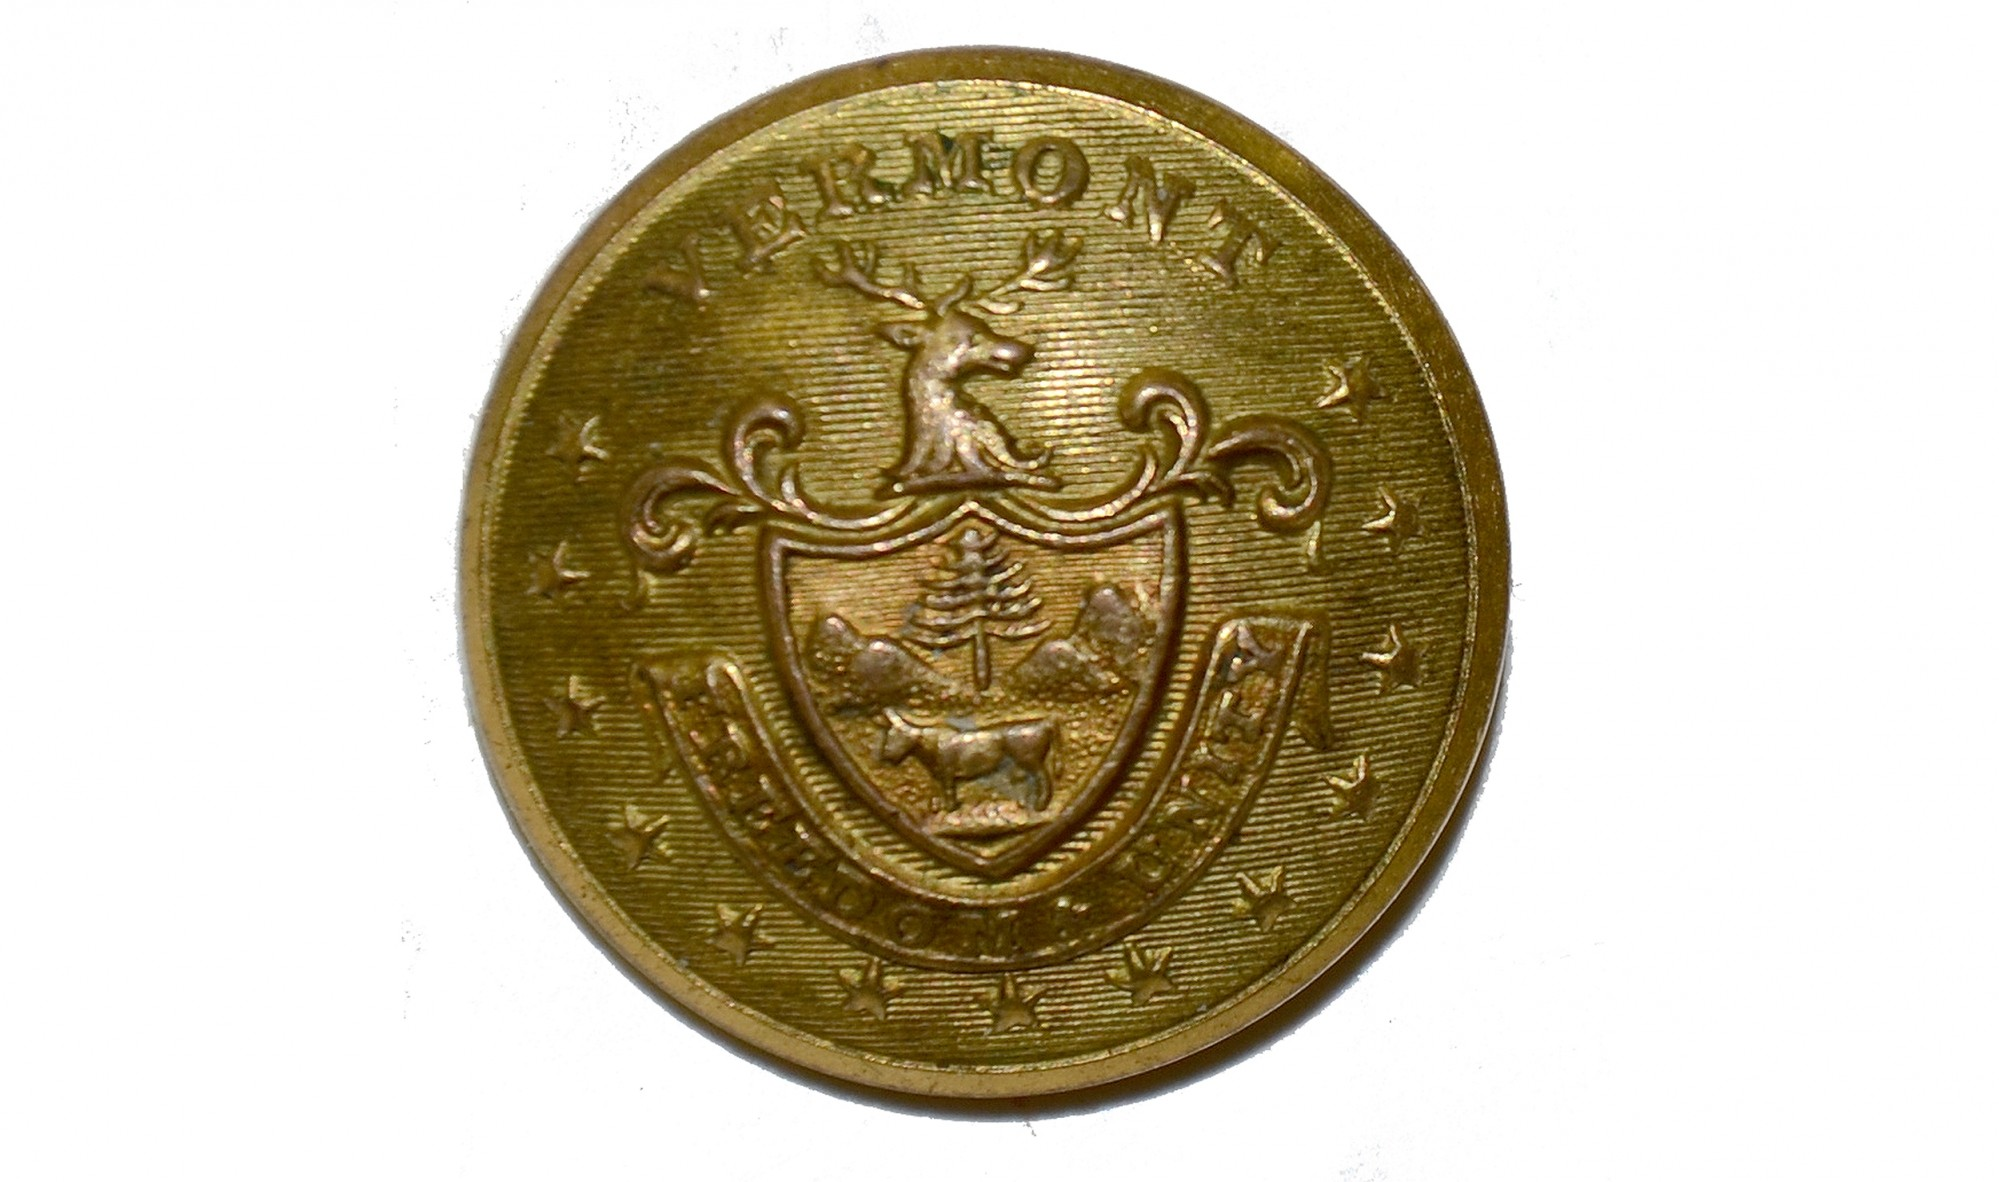 VERMONT STATE SEAL COAT BUTTON